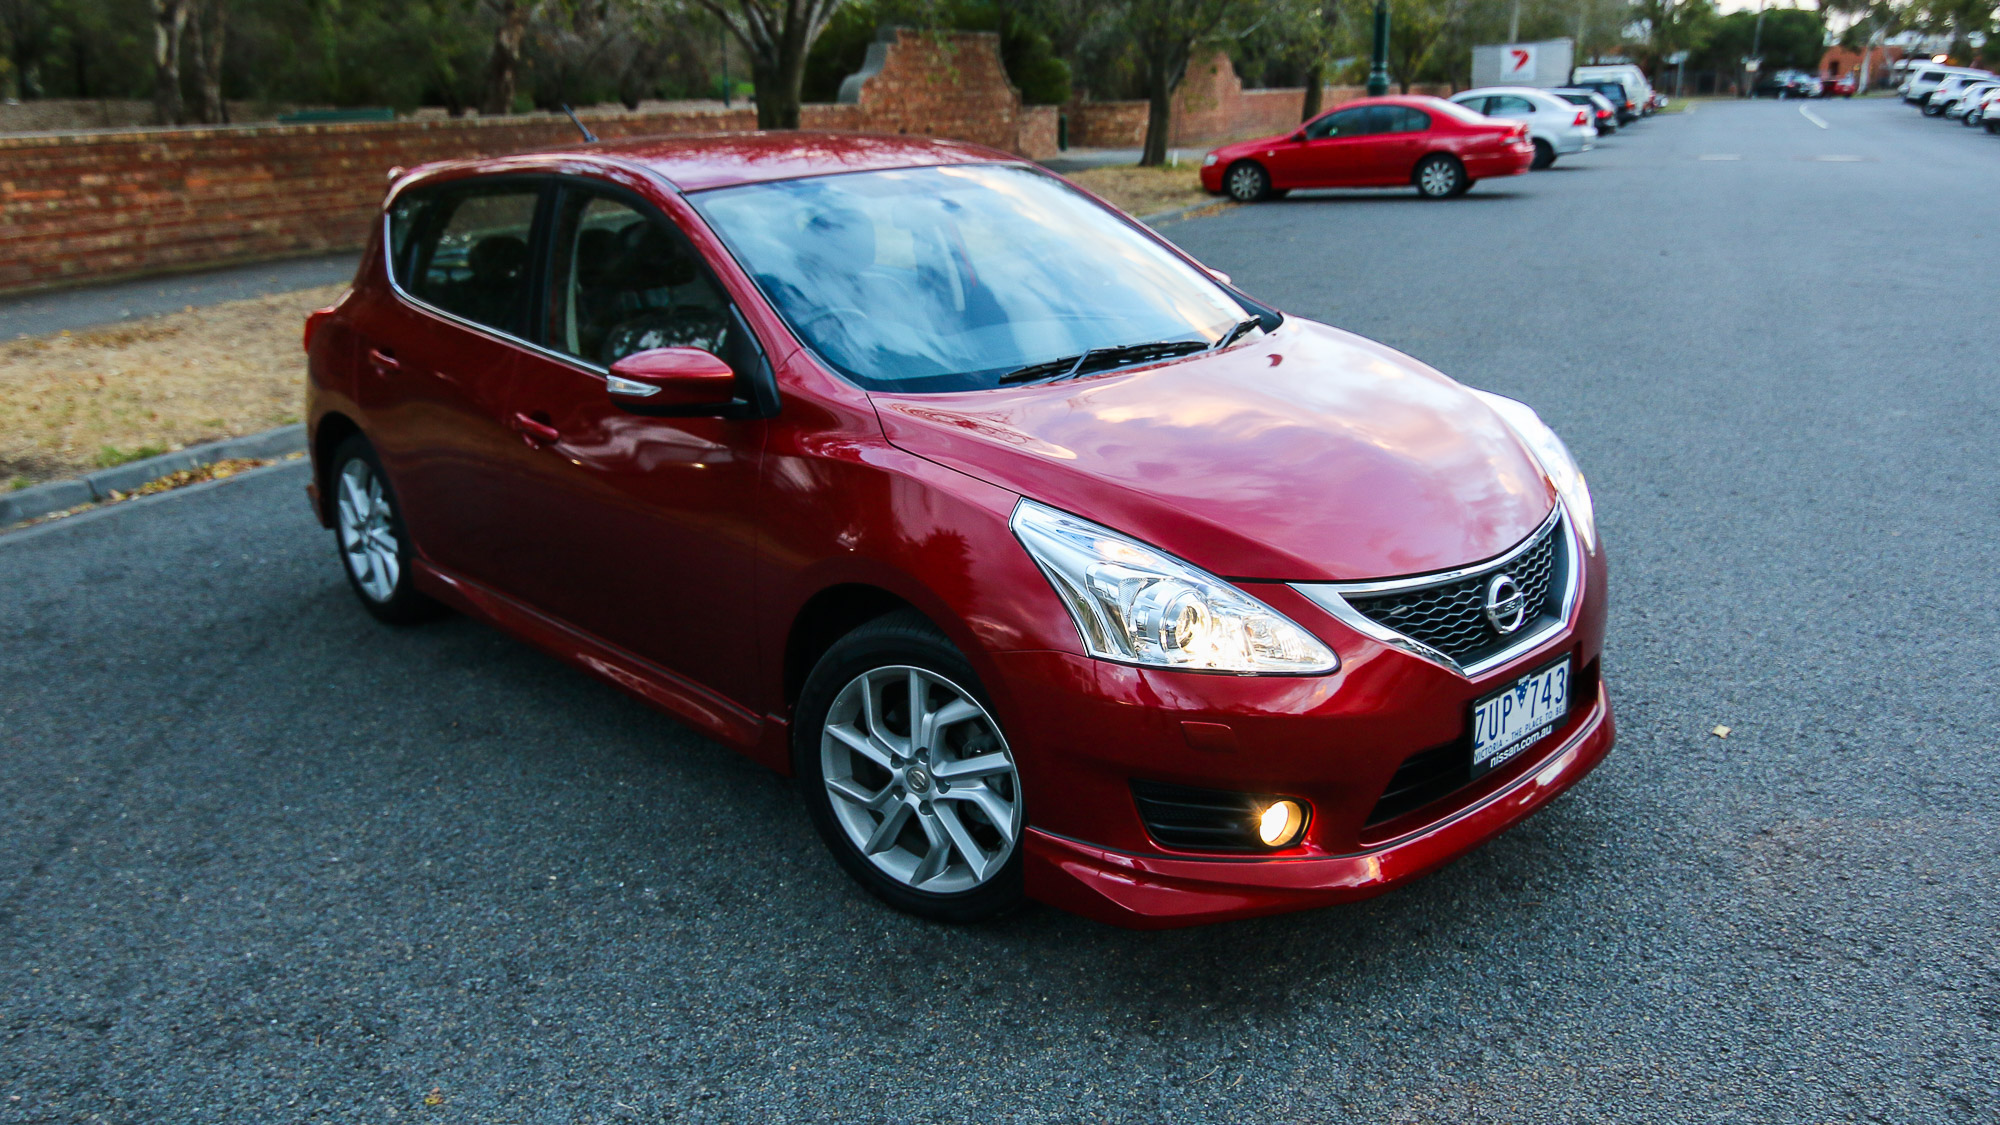 Mazda Cx in addition Honda Nsx Blue Rear furthermore Micra furthermore Lexus Gs T moreover Nissan Pulsar Sss Hatch. on 2006 toyota camry